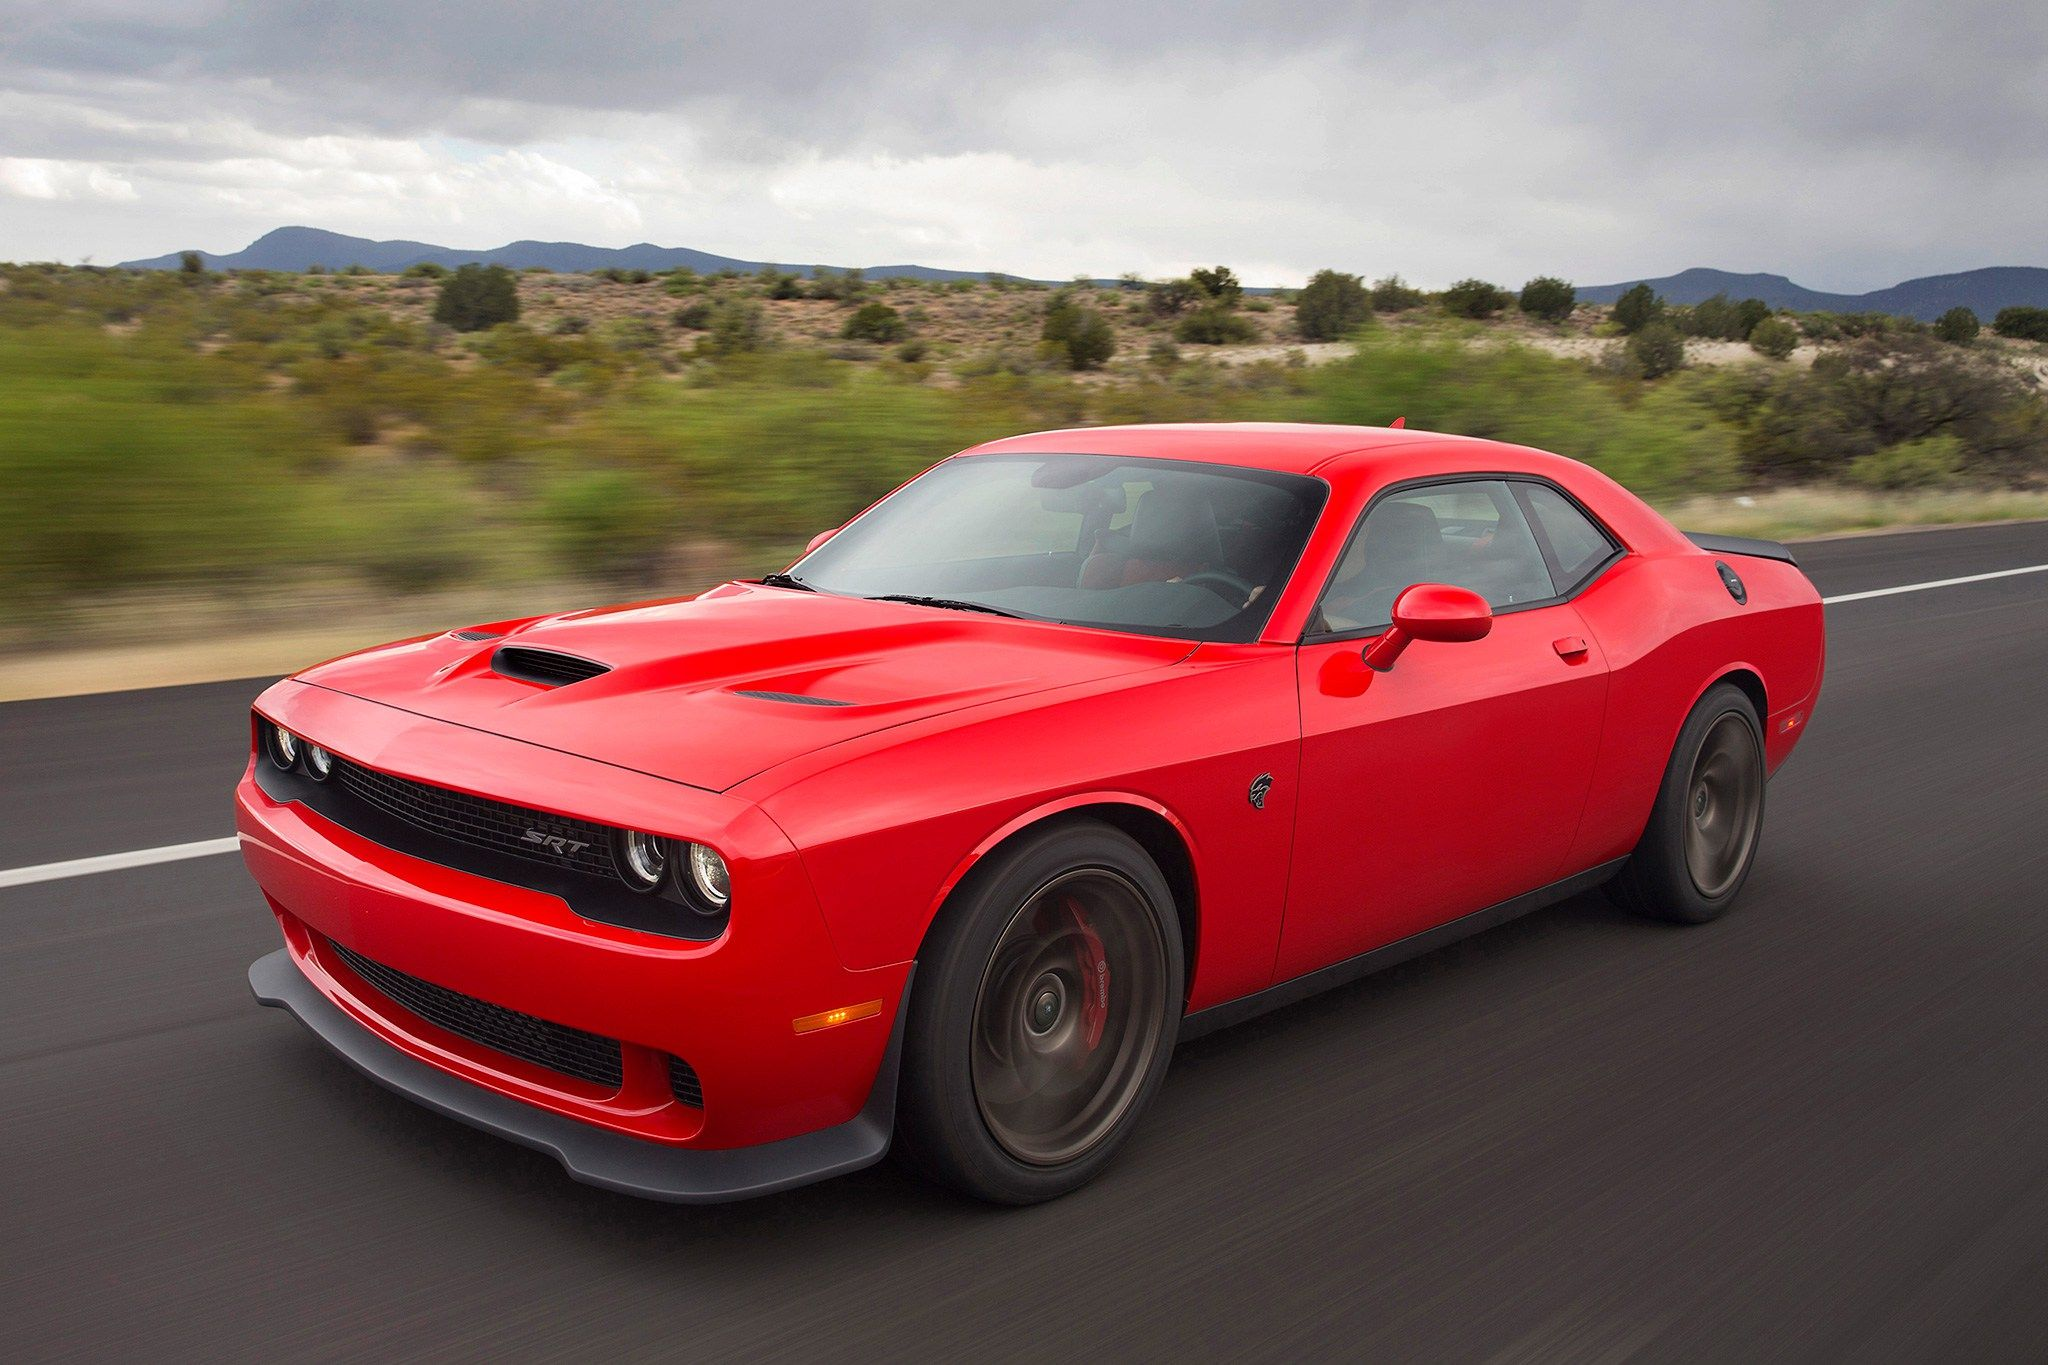 2020 dodge barracuda redesign, changes and release date - car